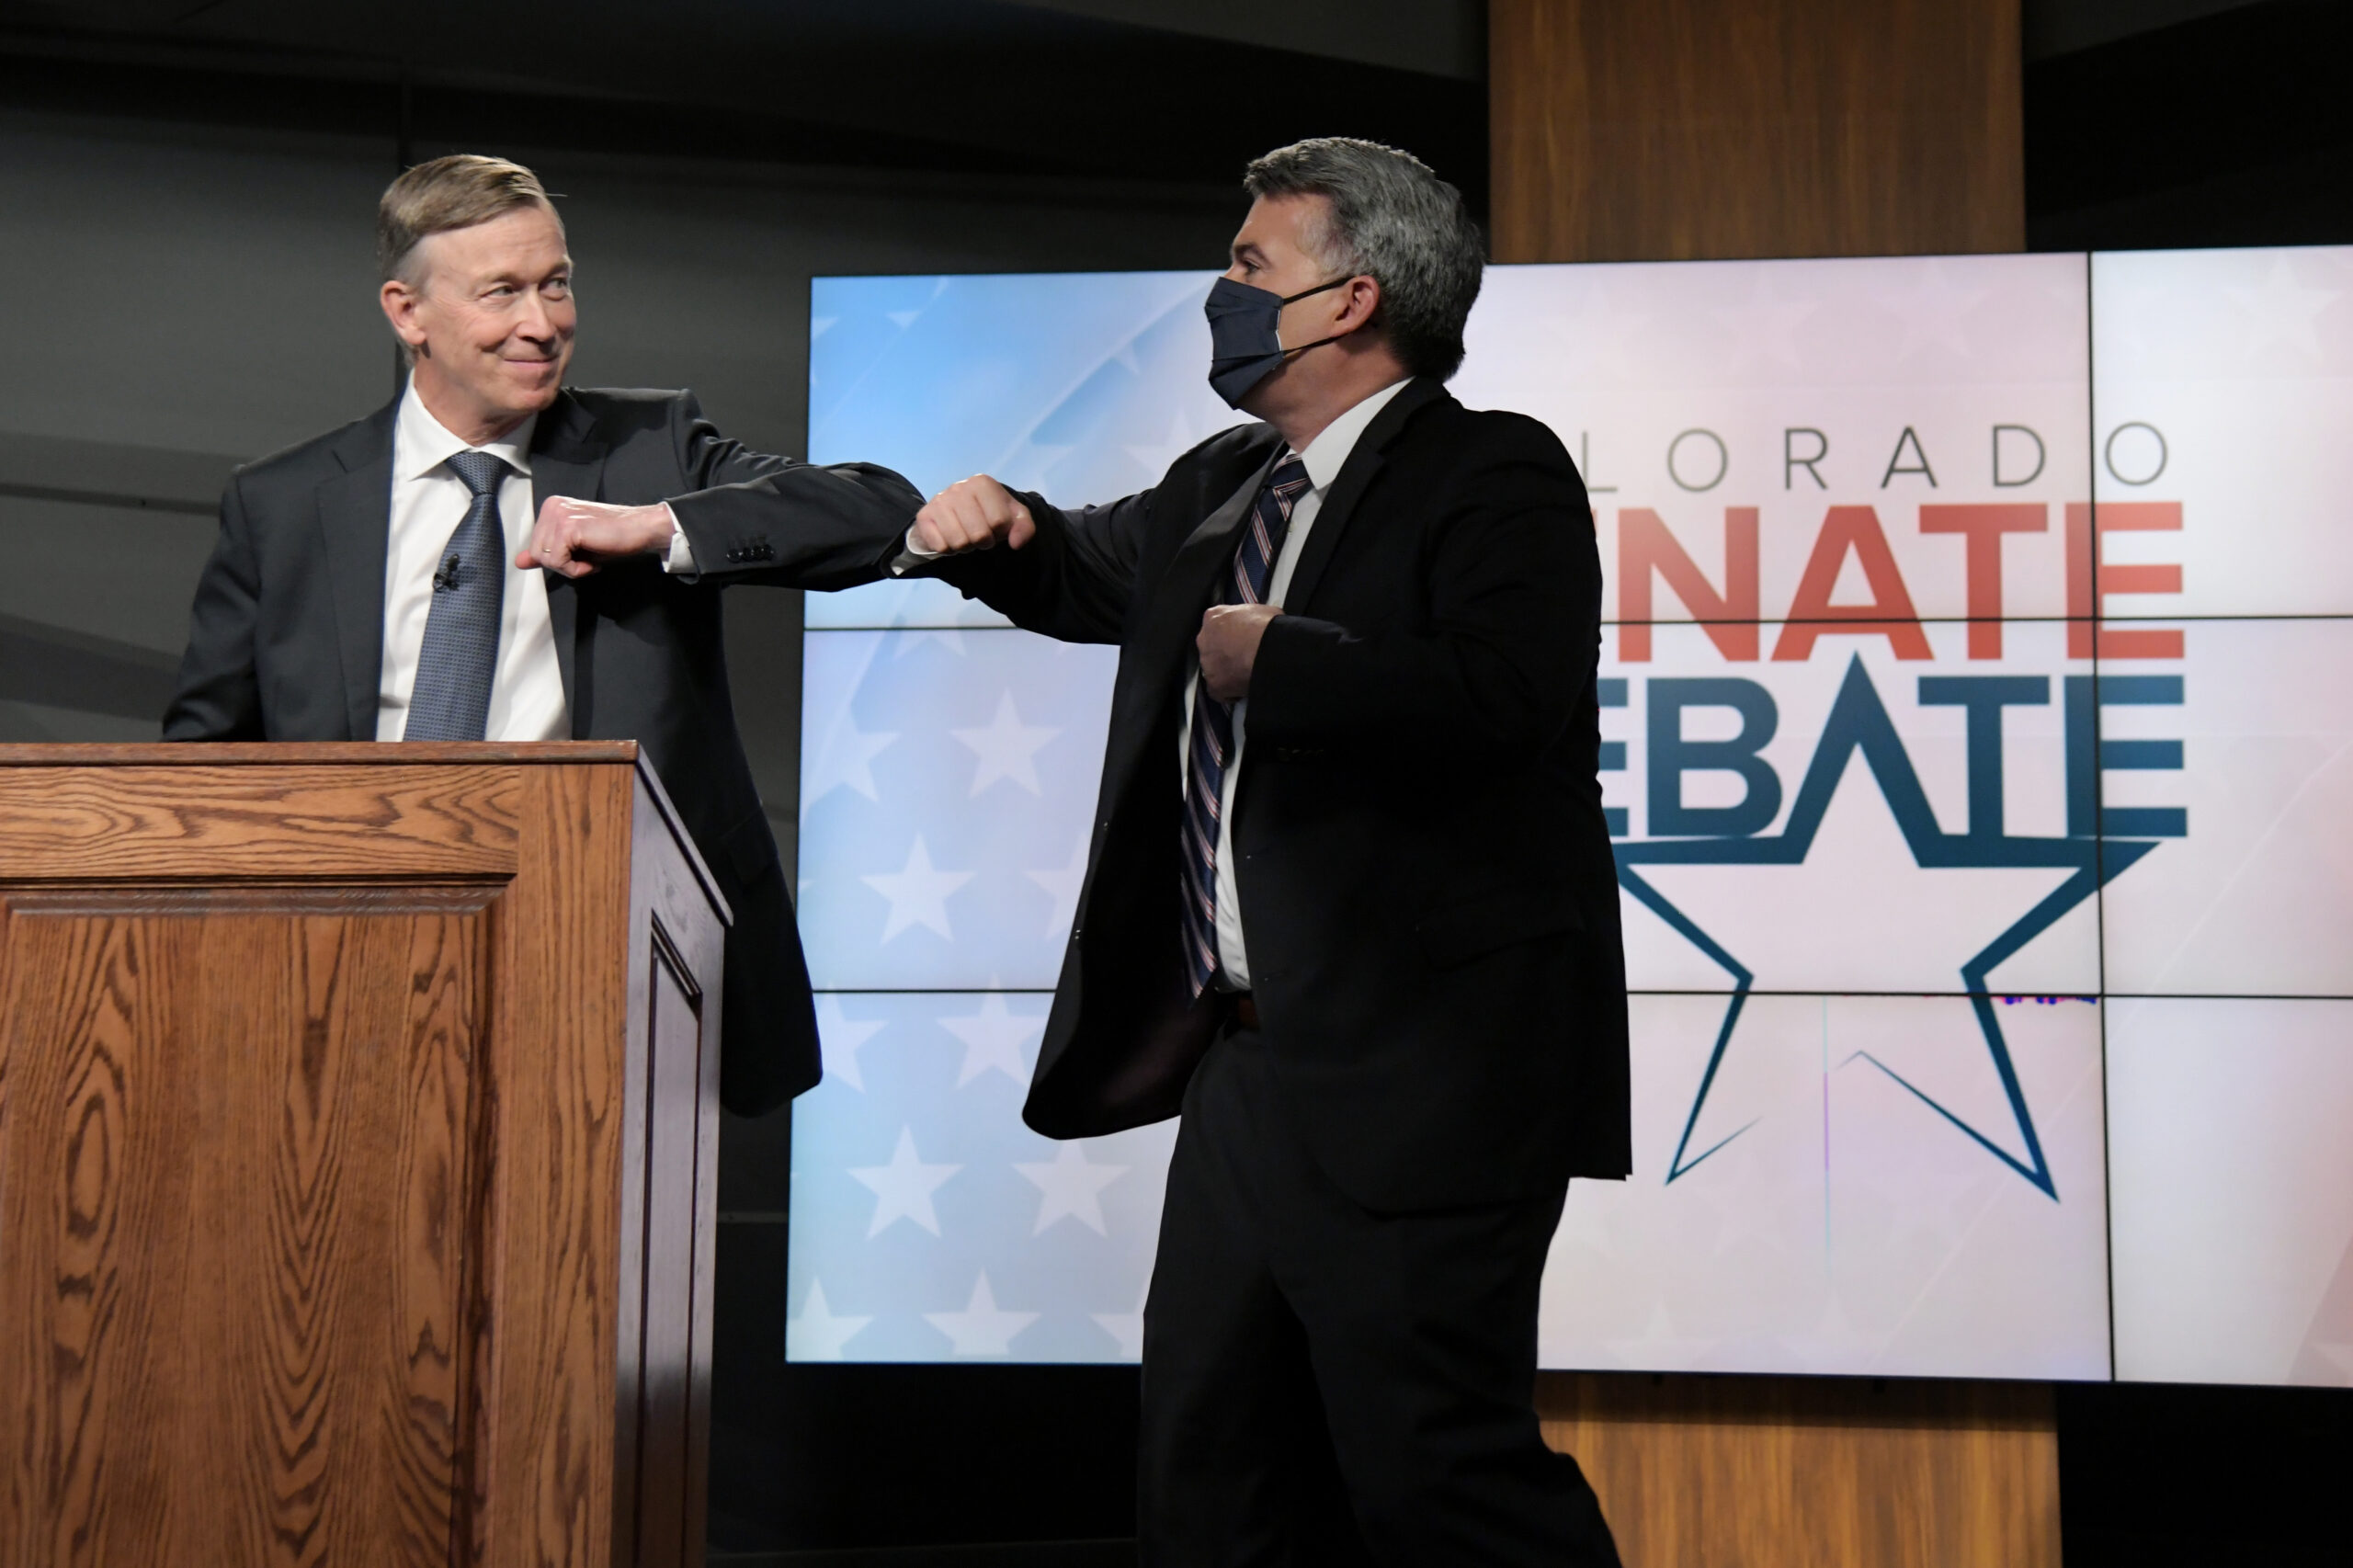 Colorado Senate debate